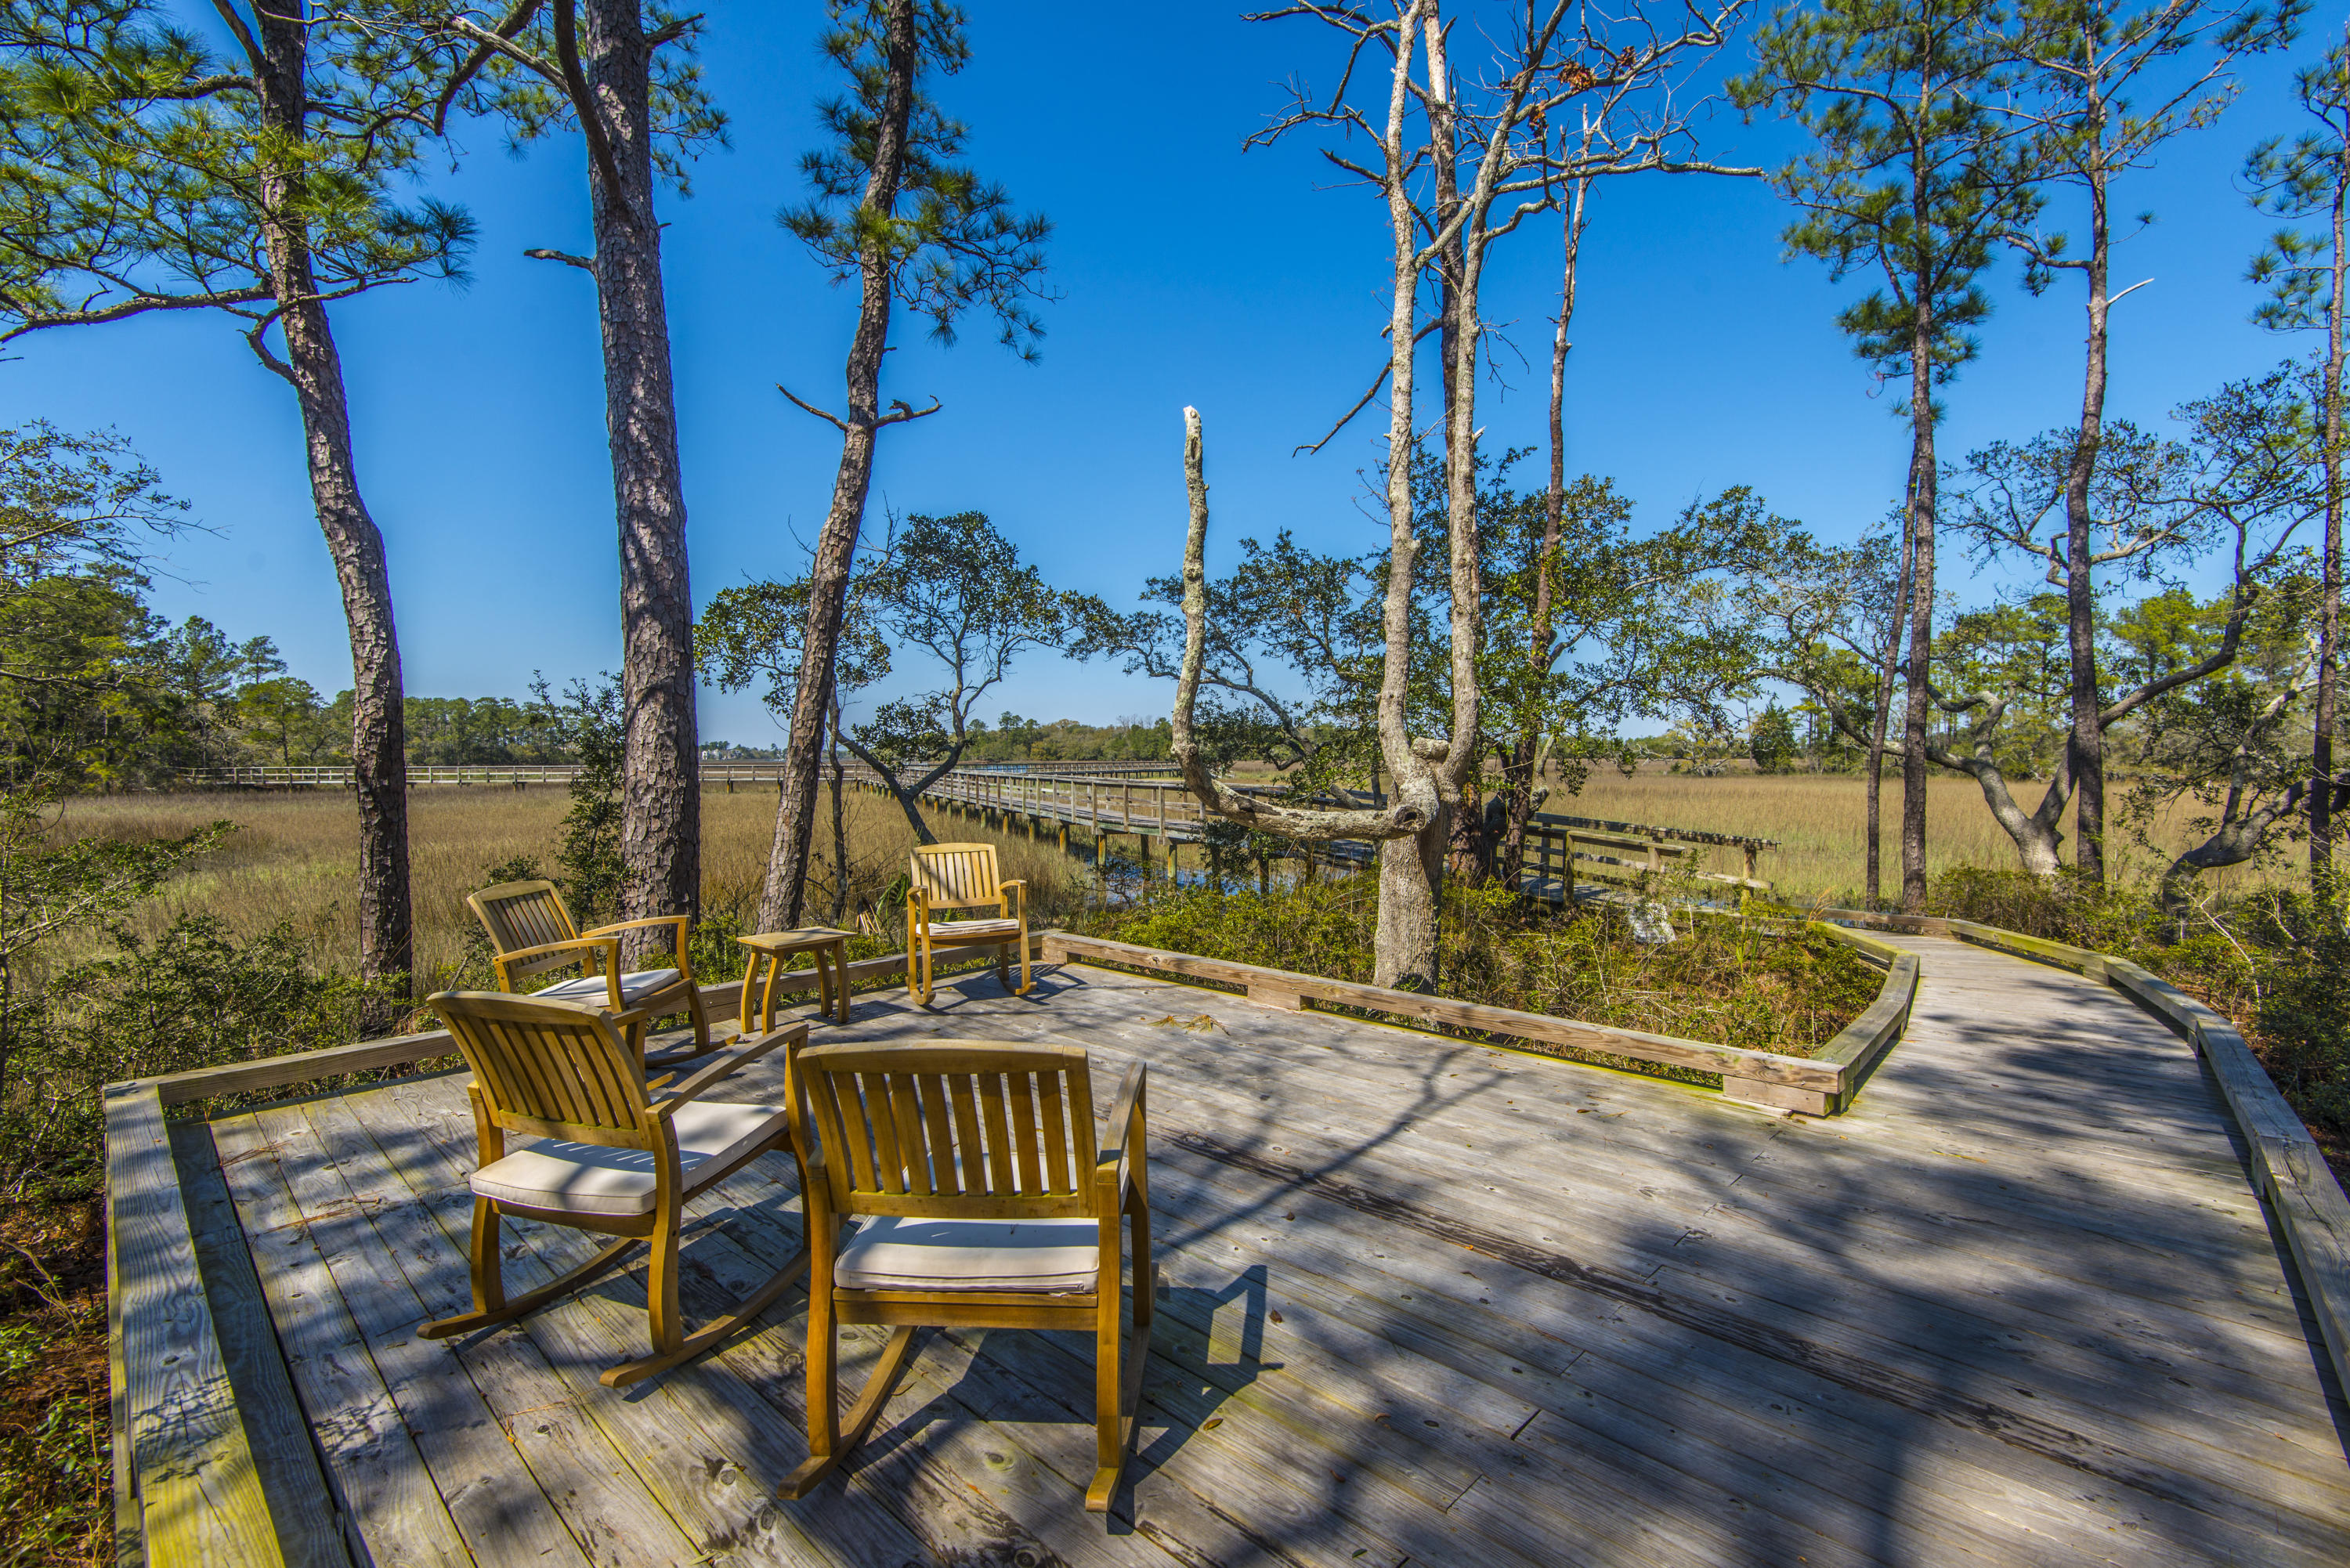 Etiwan Pointe Homes For Sale - 212 Etiwan Pointe, Mount Pleasant, SC - 0